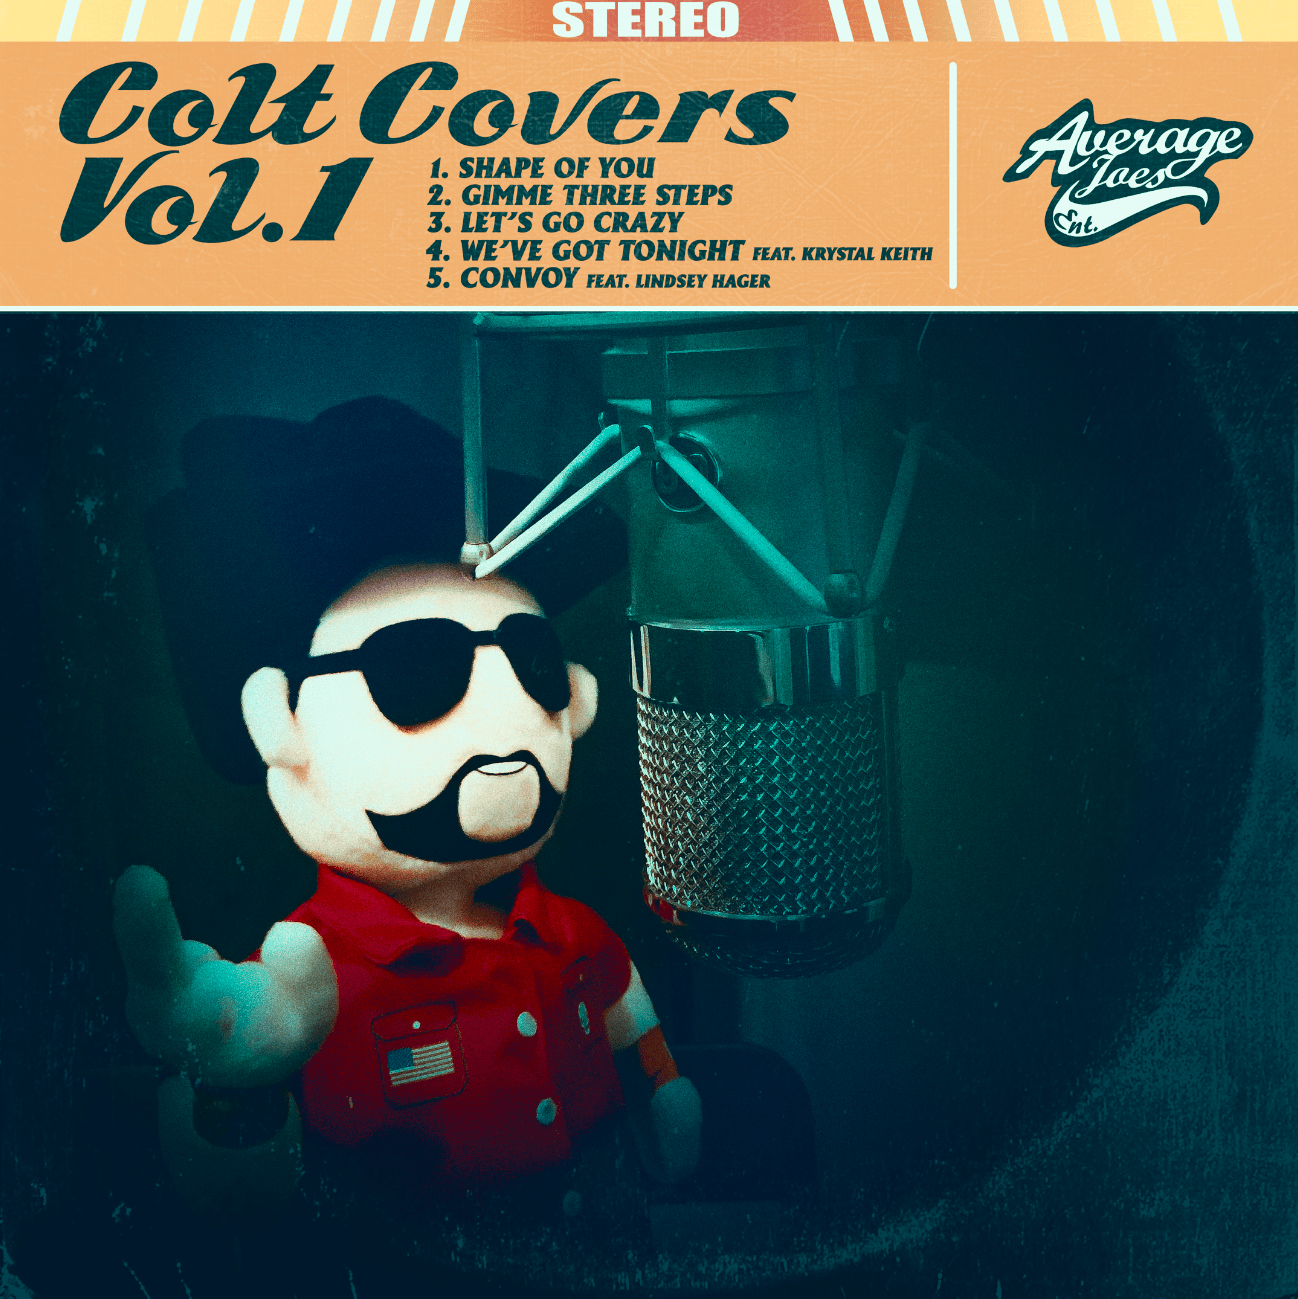 Colt Covers Vol. 1 Square